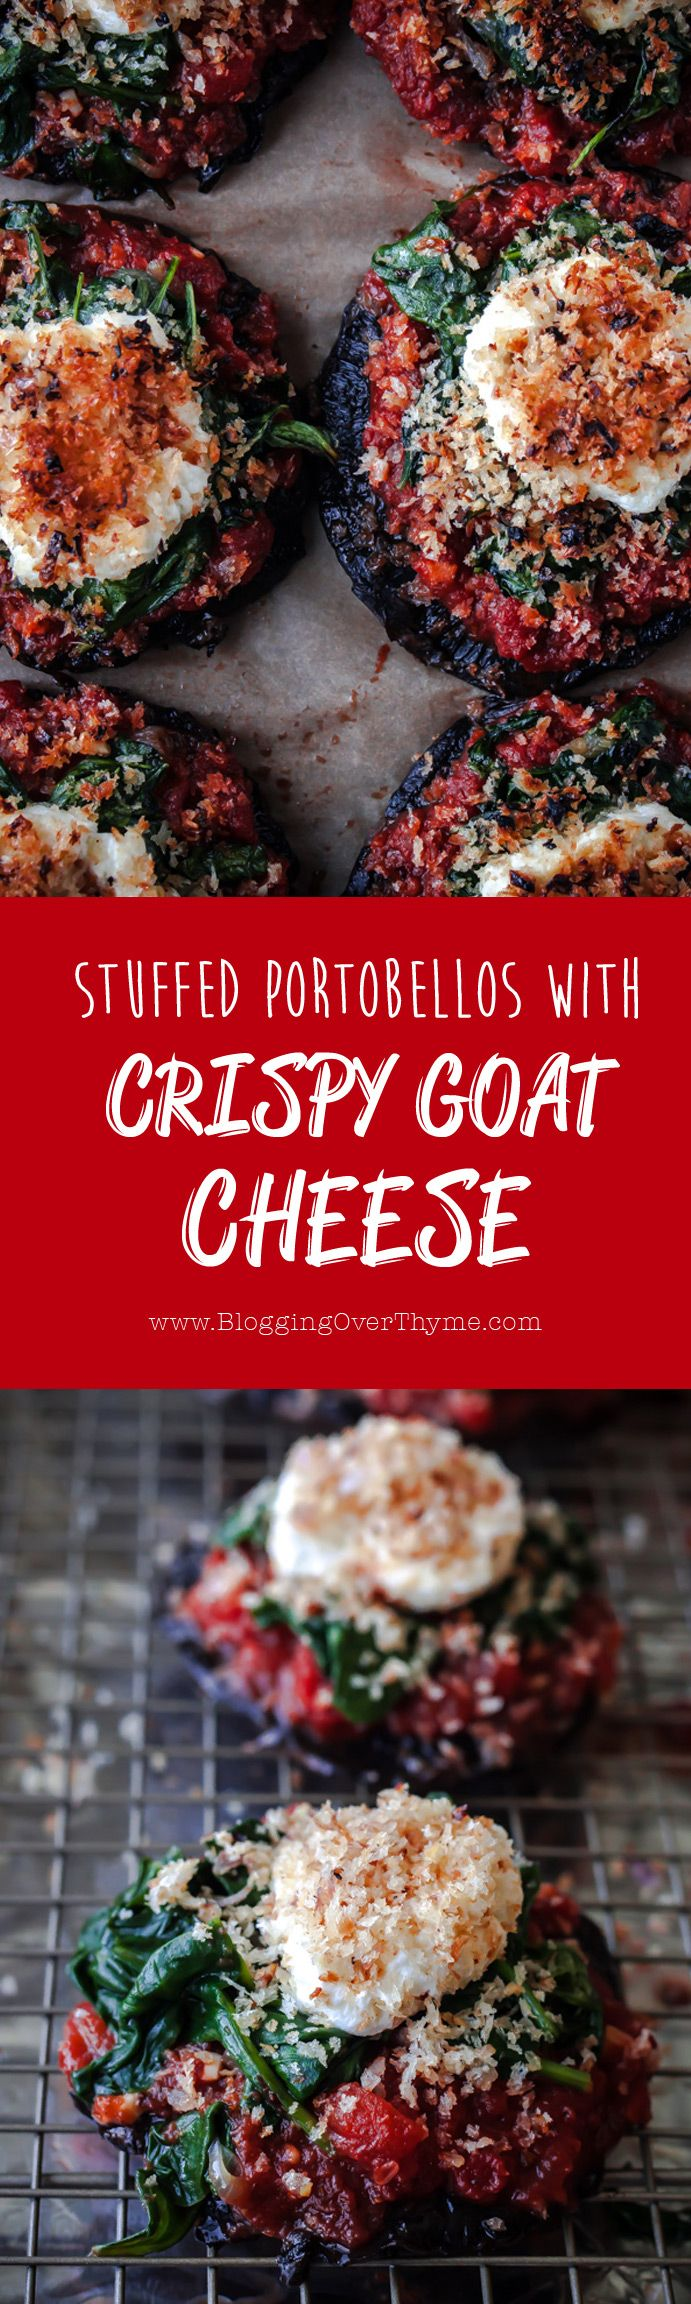 Stuffed Portobello Mushrooms with Crispy Goat Cheese. A delicious vegetarian main course for any day of the week!